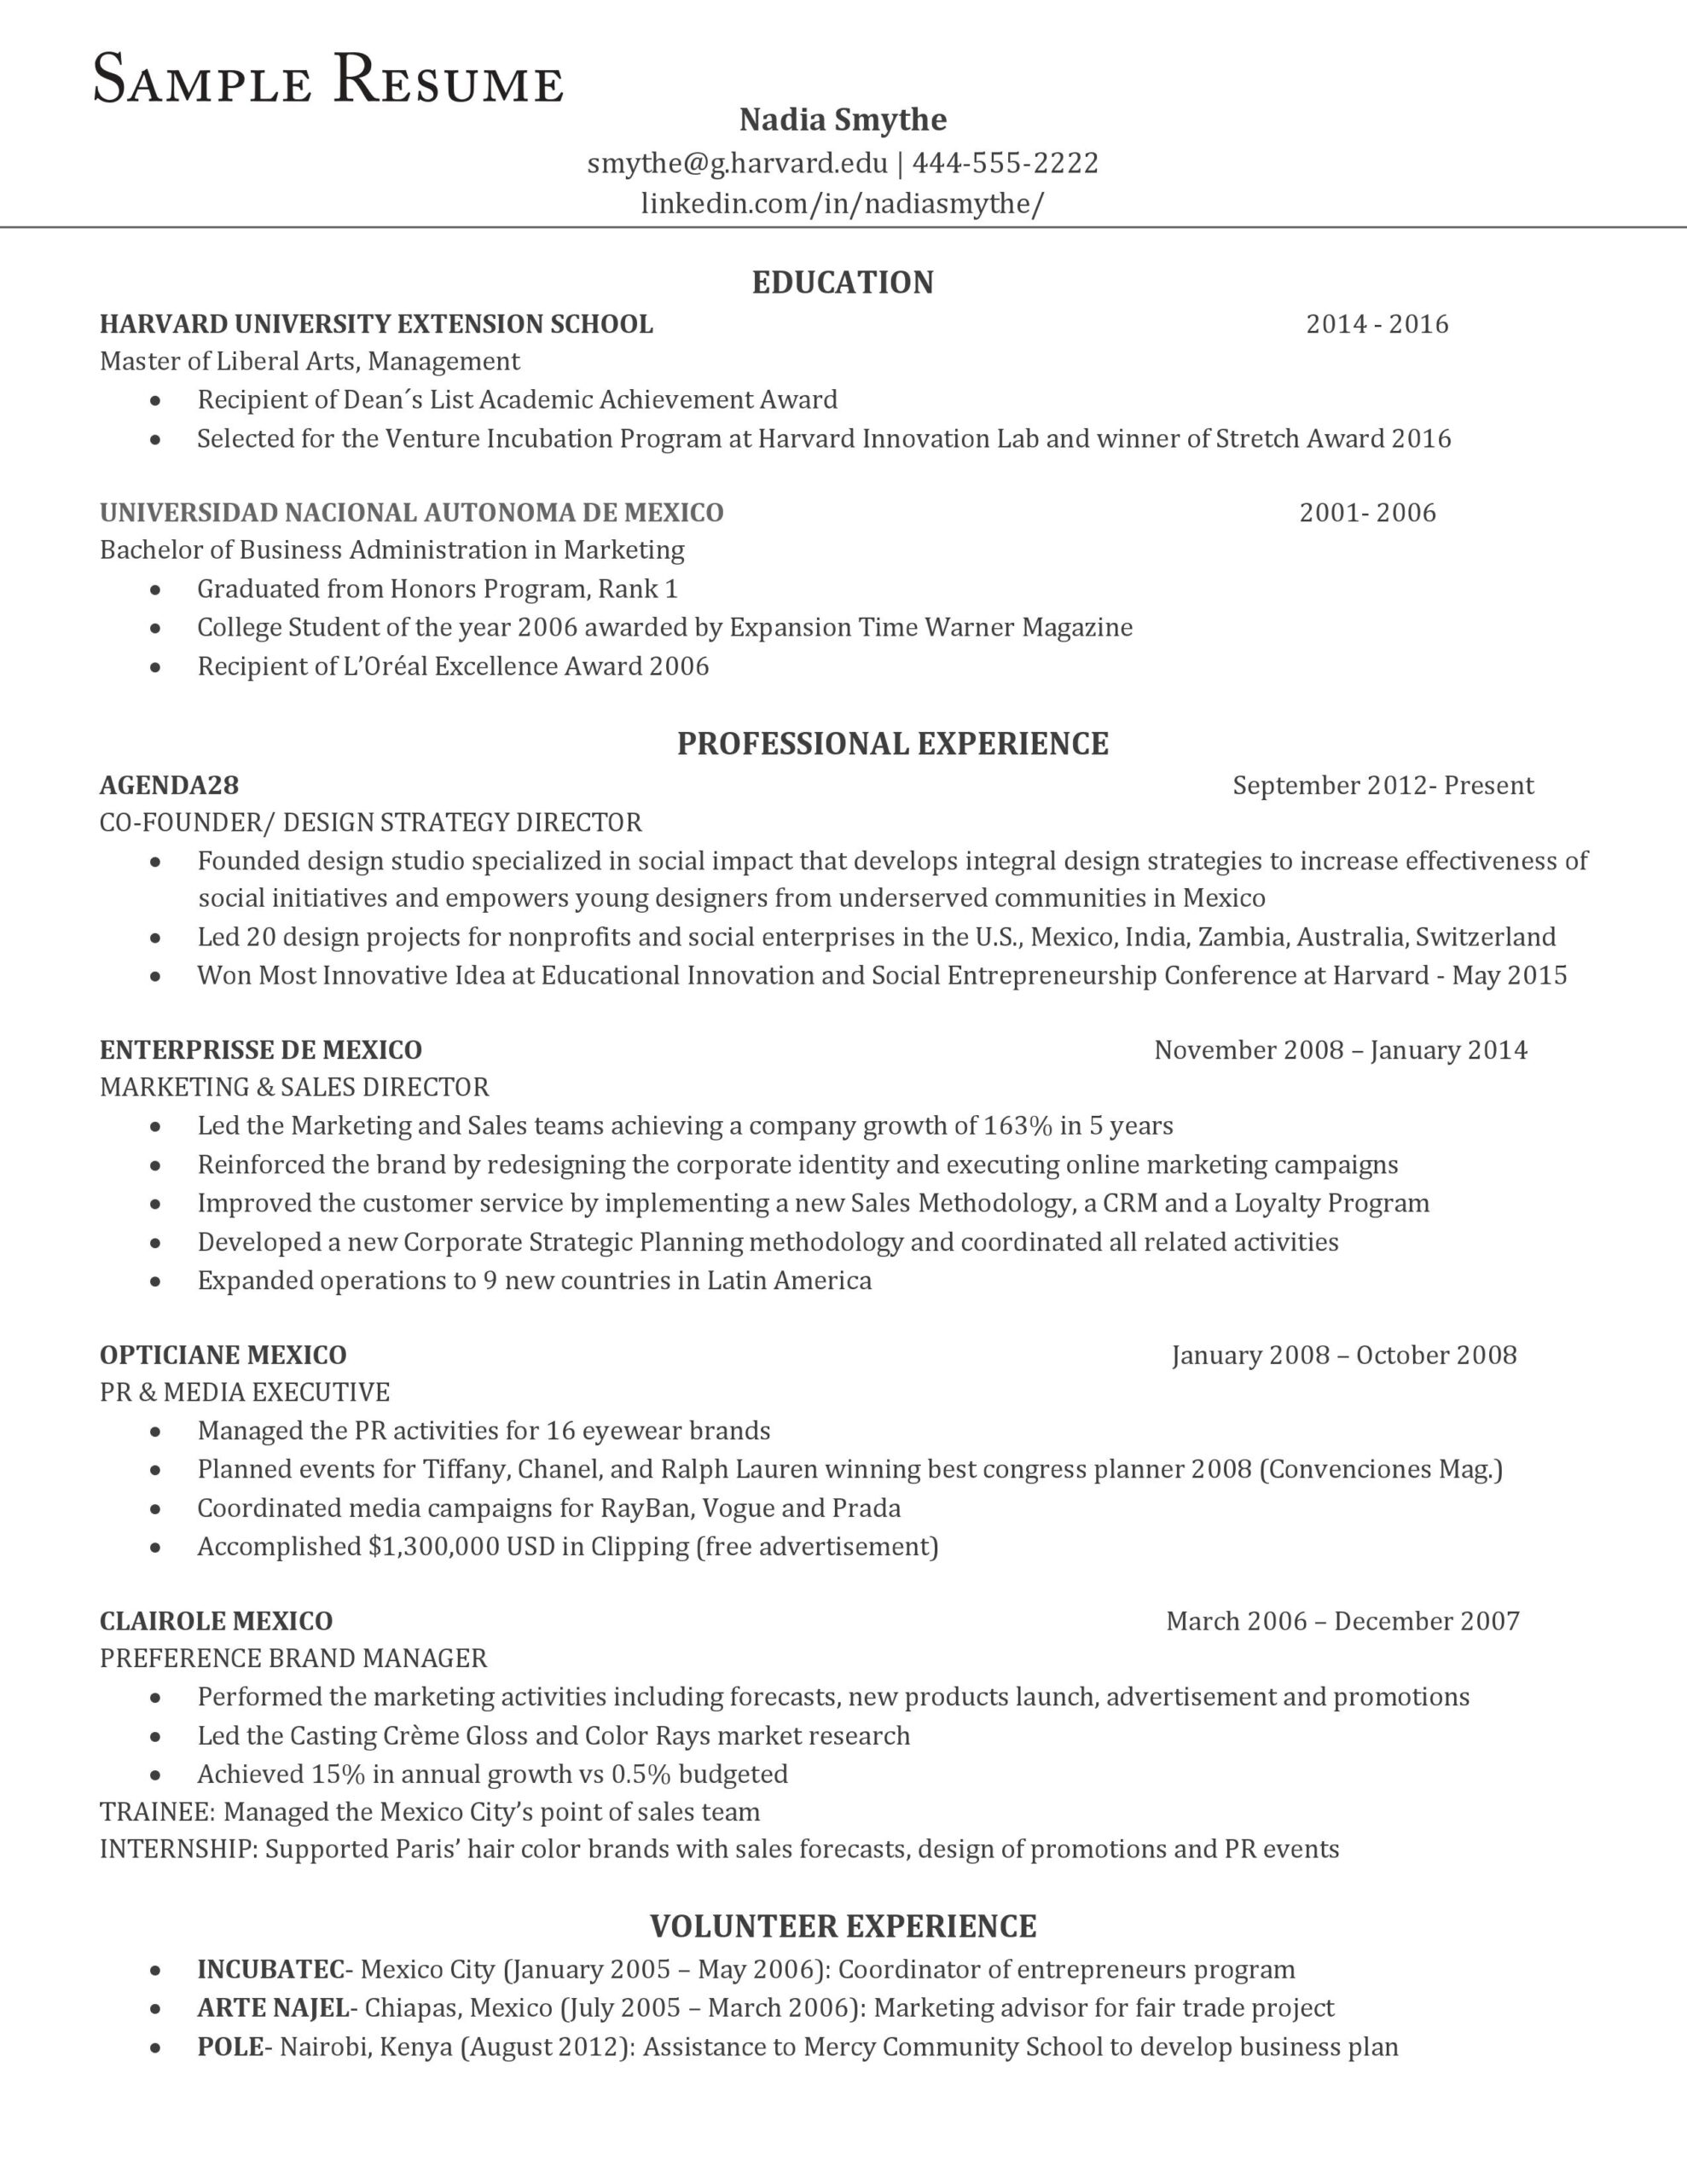 an example of the perfect resume according to harvard career experts style template Resume Harvard Style Resume Template